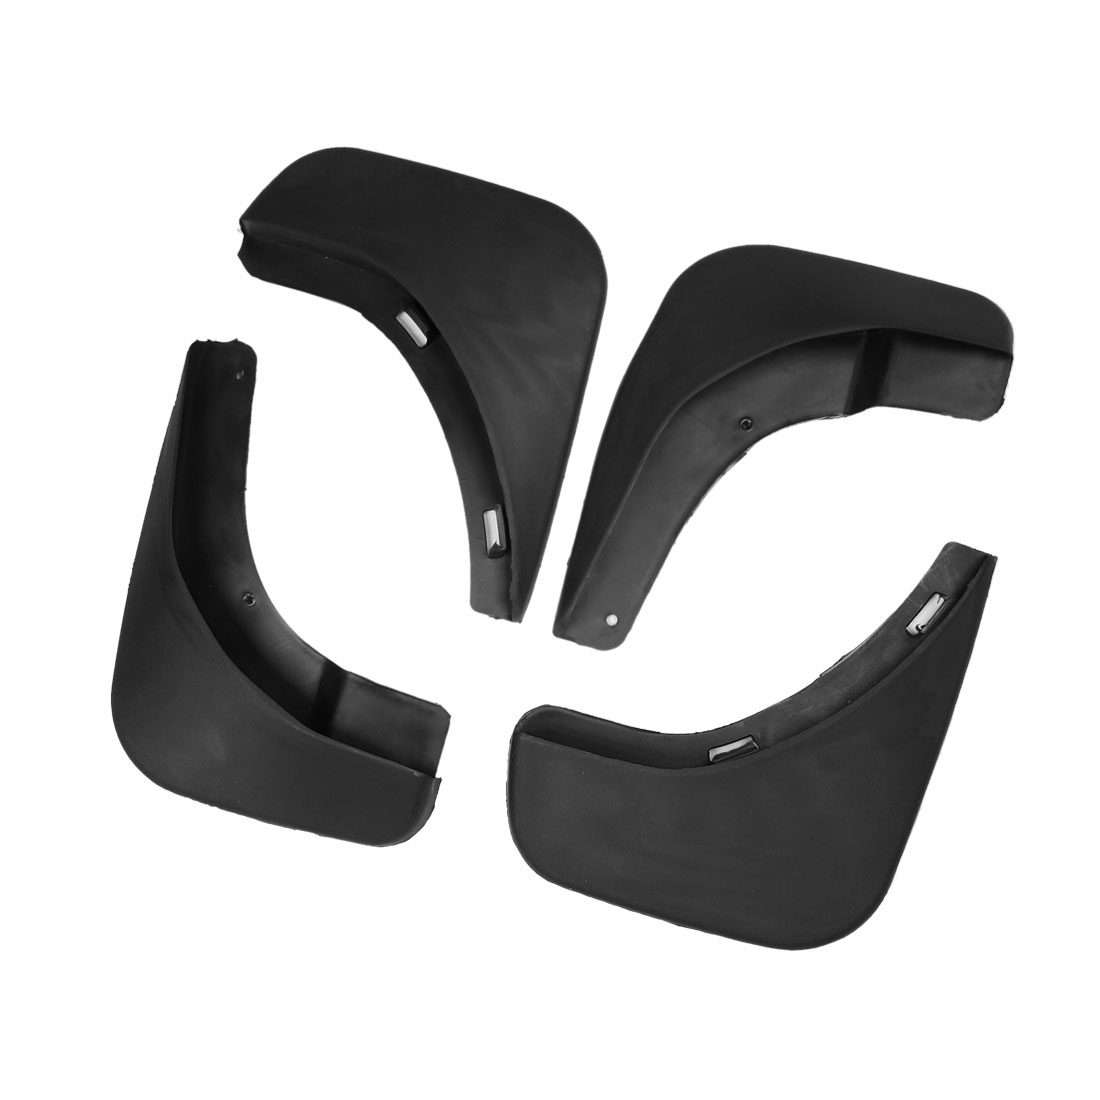 Car Mudguard Splash Guards Mud Flaps Front Rear Set for Skoda Octavia